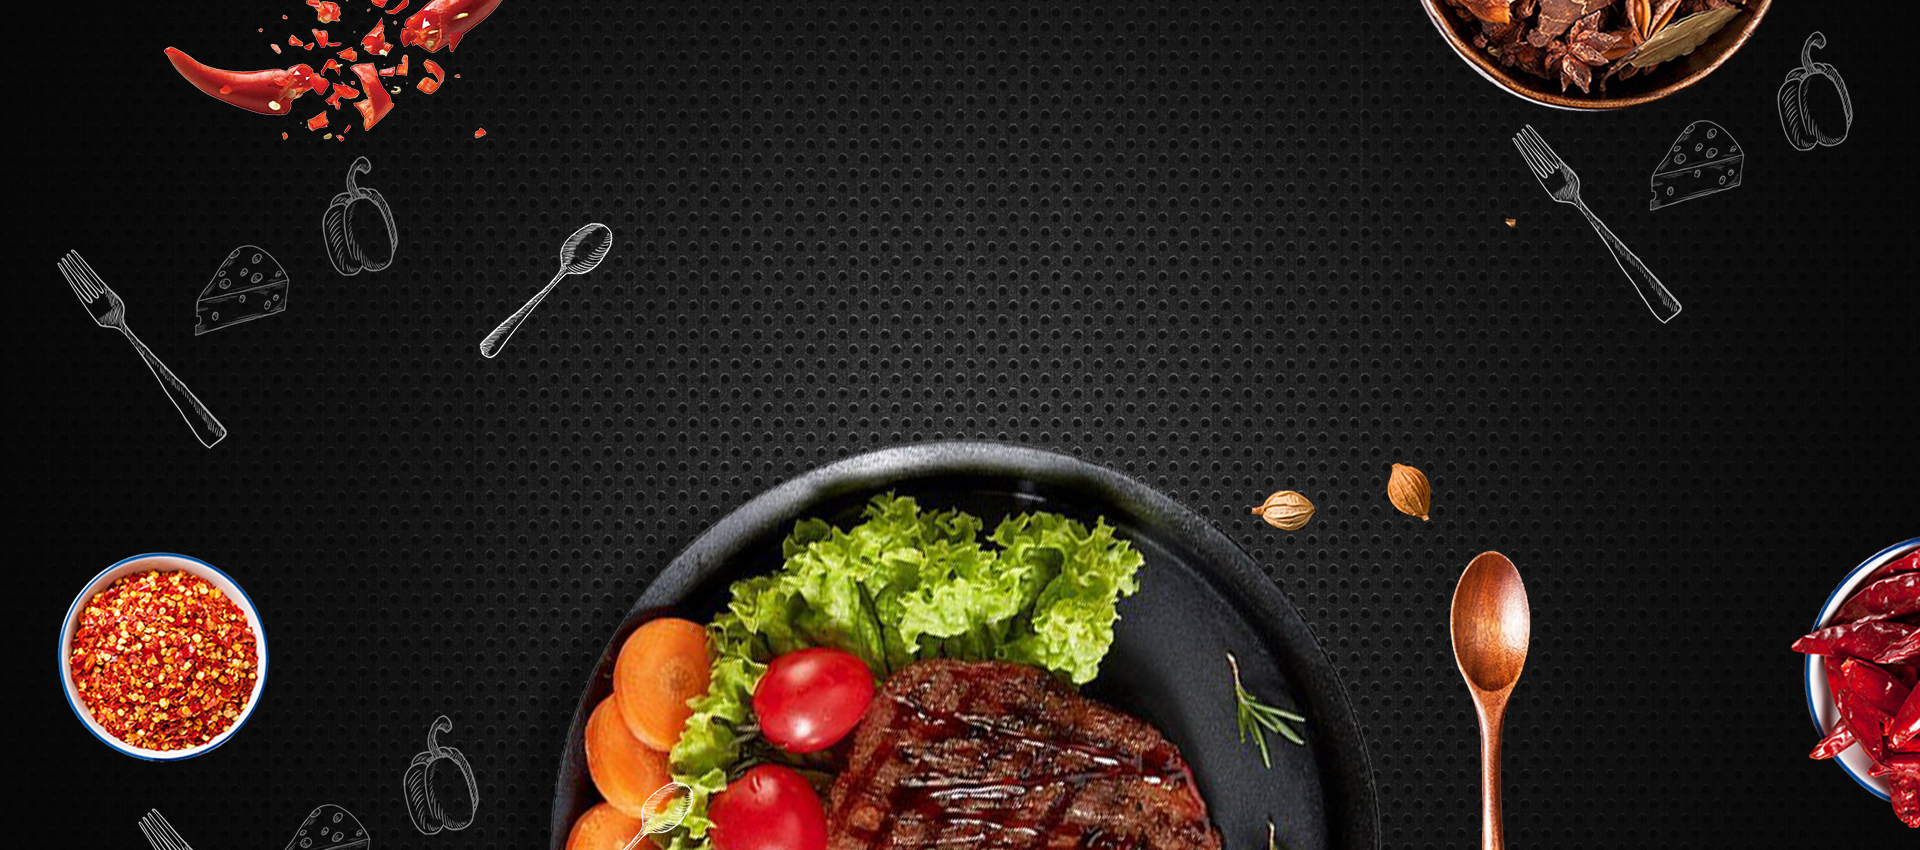 late night snack  gourmet wine  steak promotion  cool